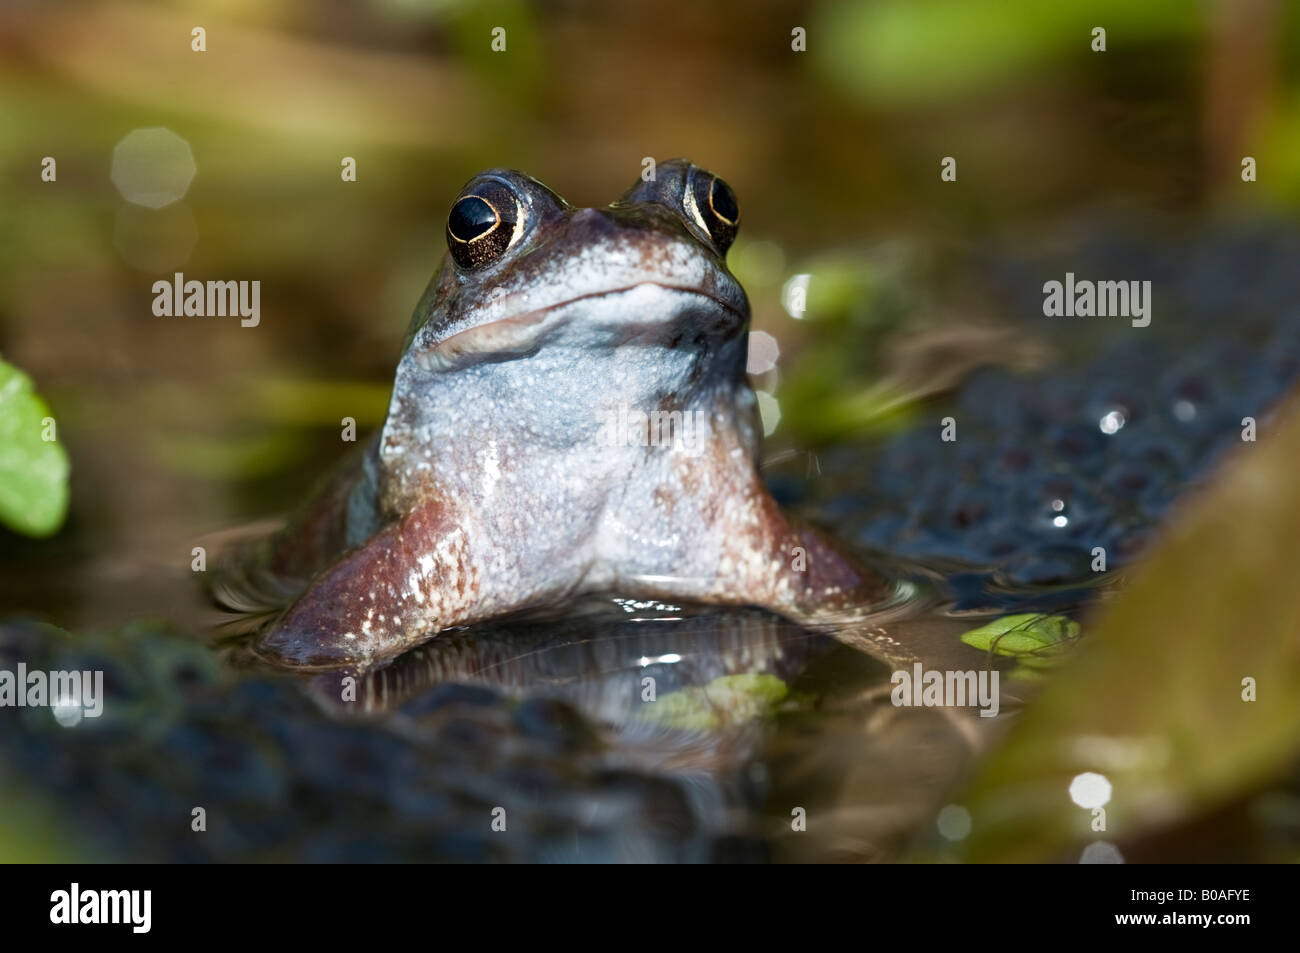 Female common frog (Rana temporaria) in a garden pond with frogspawn - Stock Image